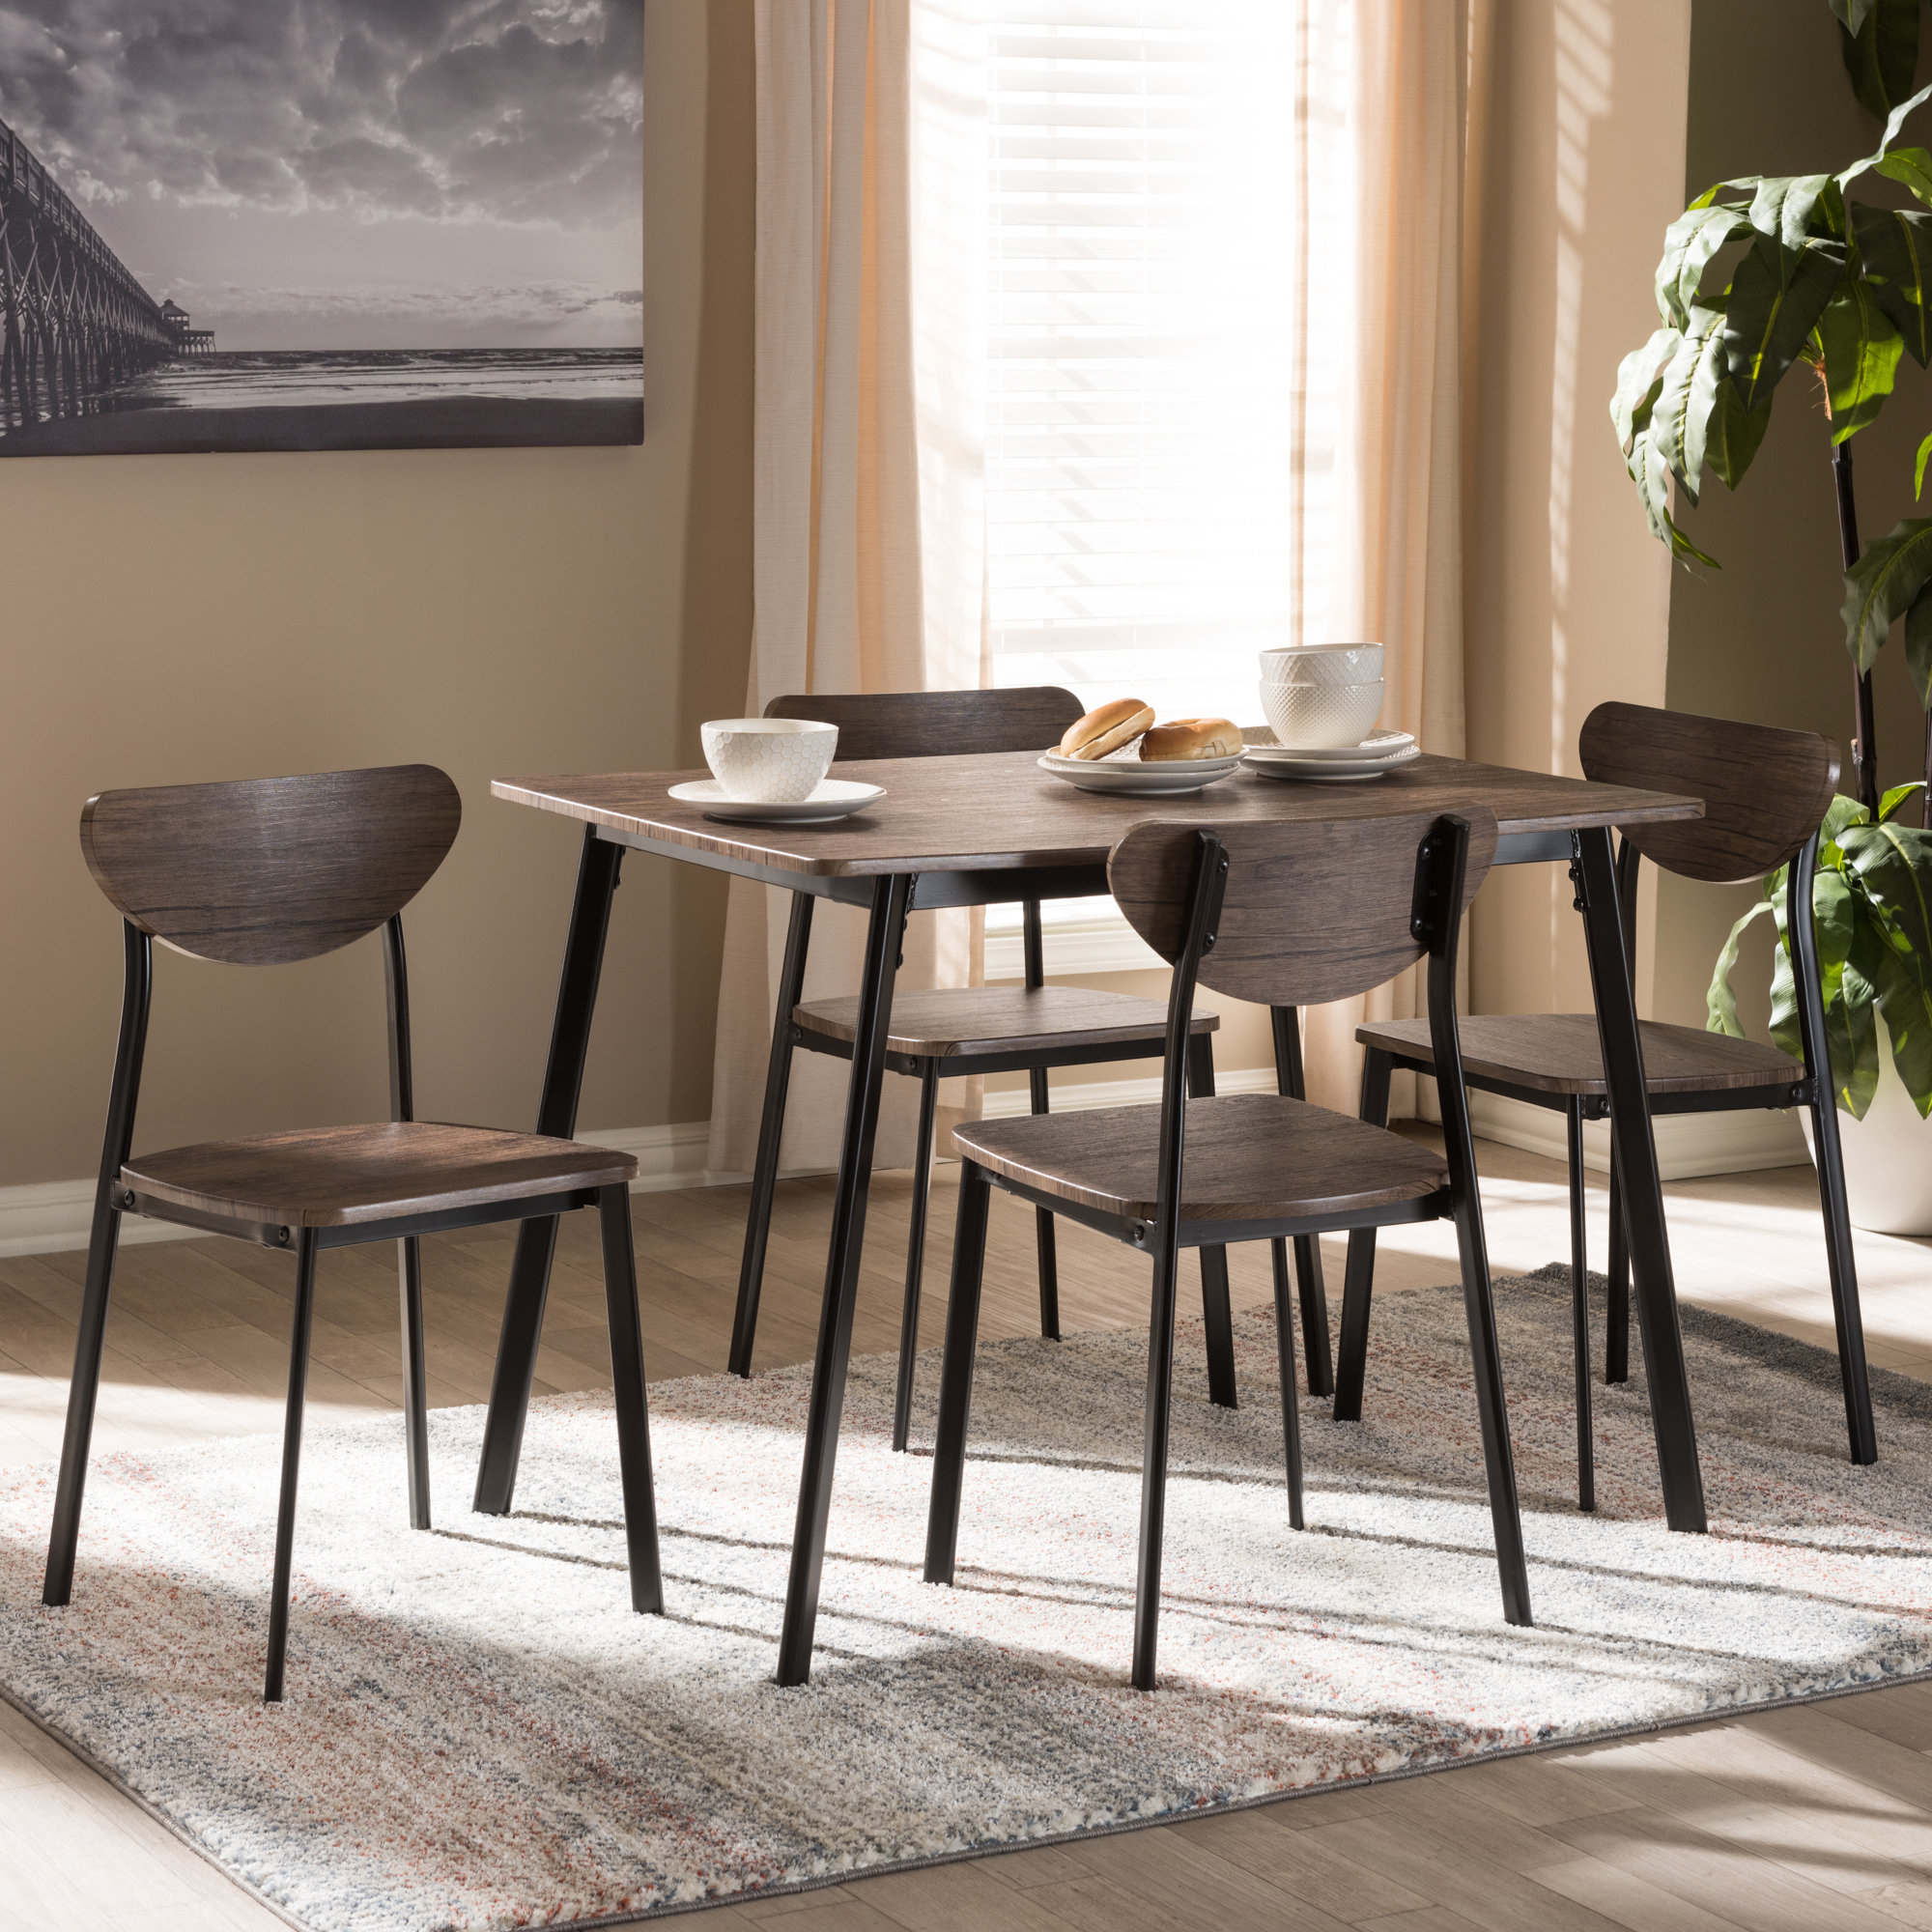 Tejeda 5 Piece Dining Sets With Regard To Trendy Details About Union Rustic Tejeda 5 Piece Dining Set (View 17 of 20)